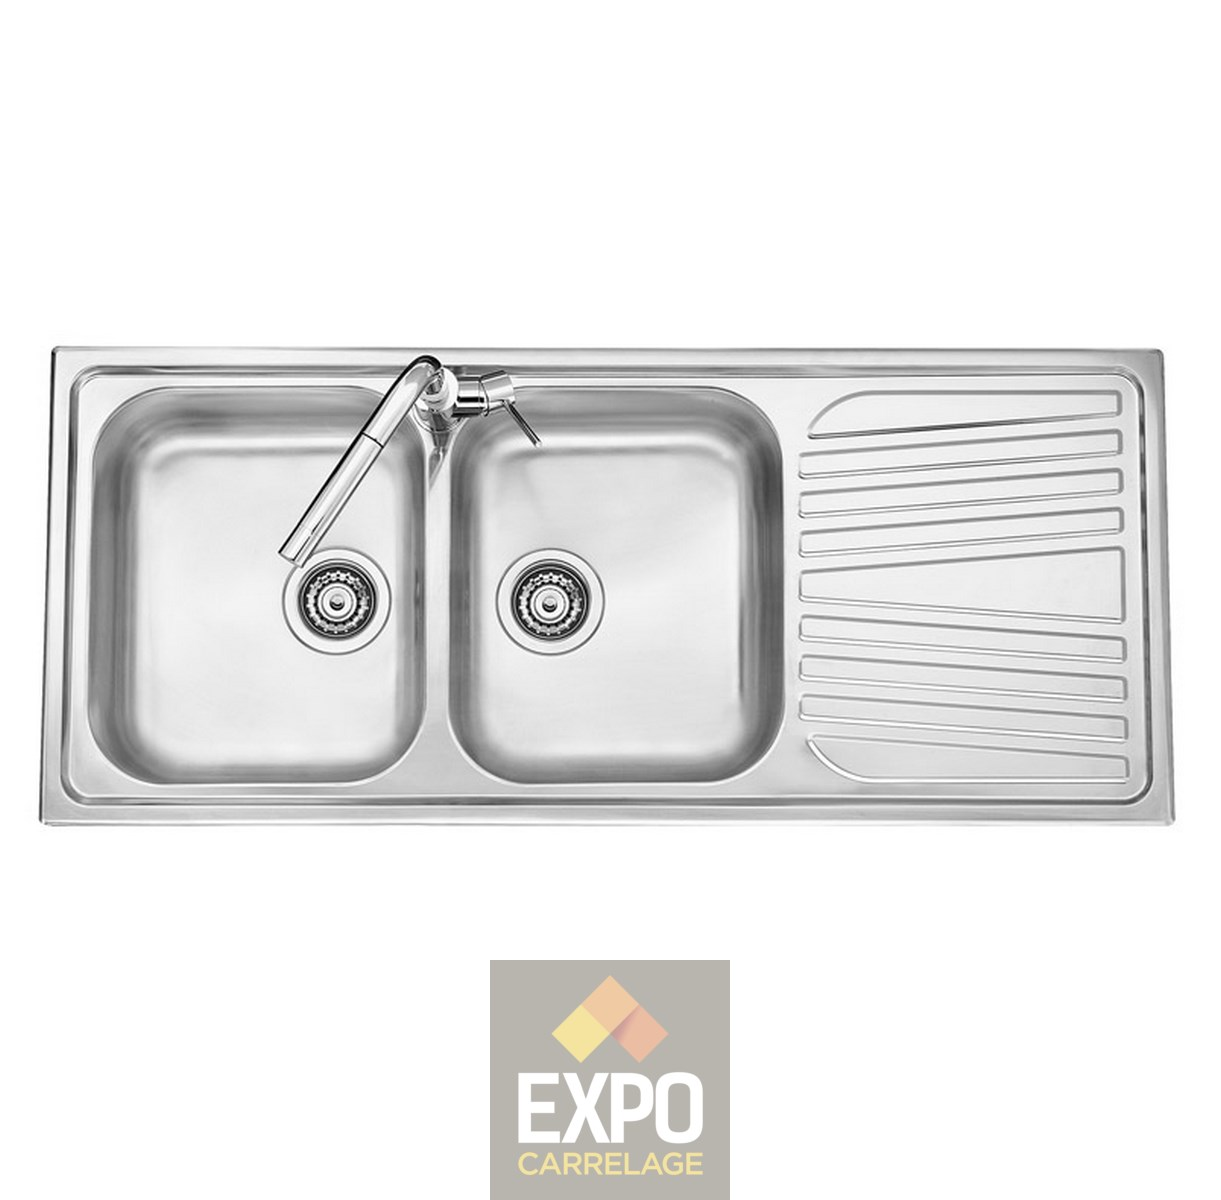 Evier Inox Deux Bacs Evier Inox Olympus 2 Bacs Expo Carrelage